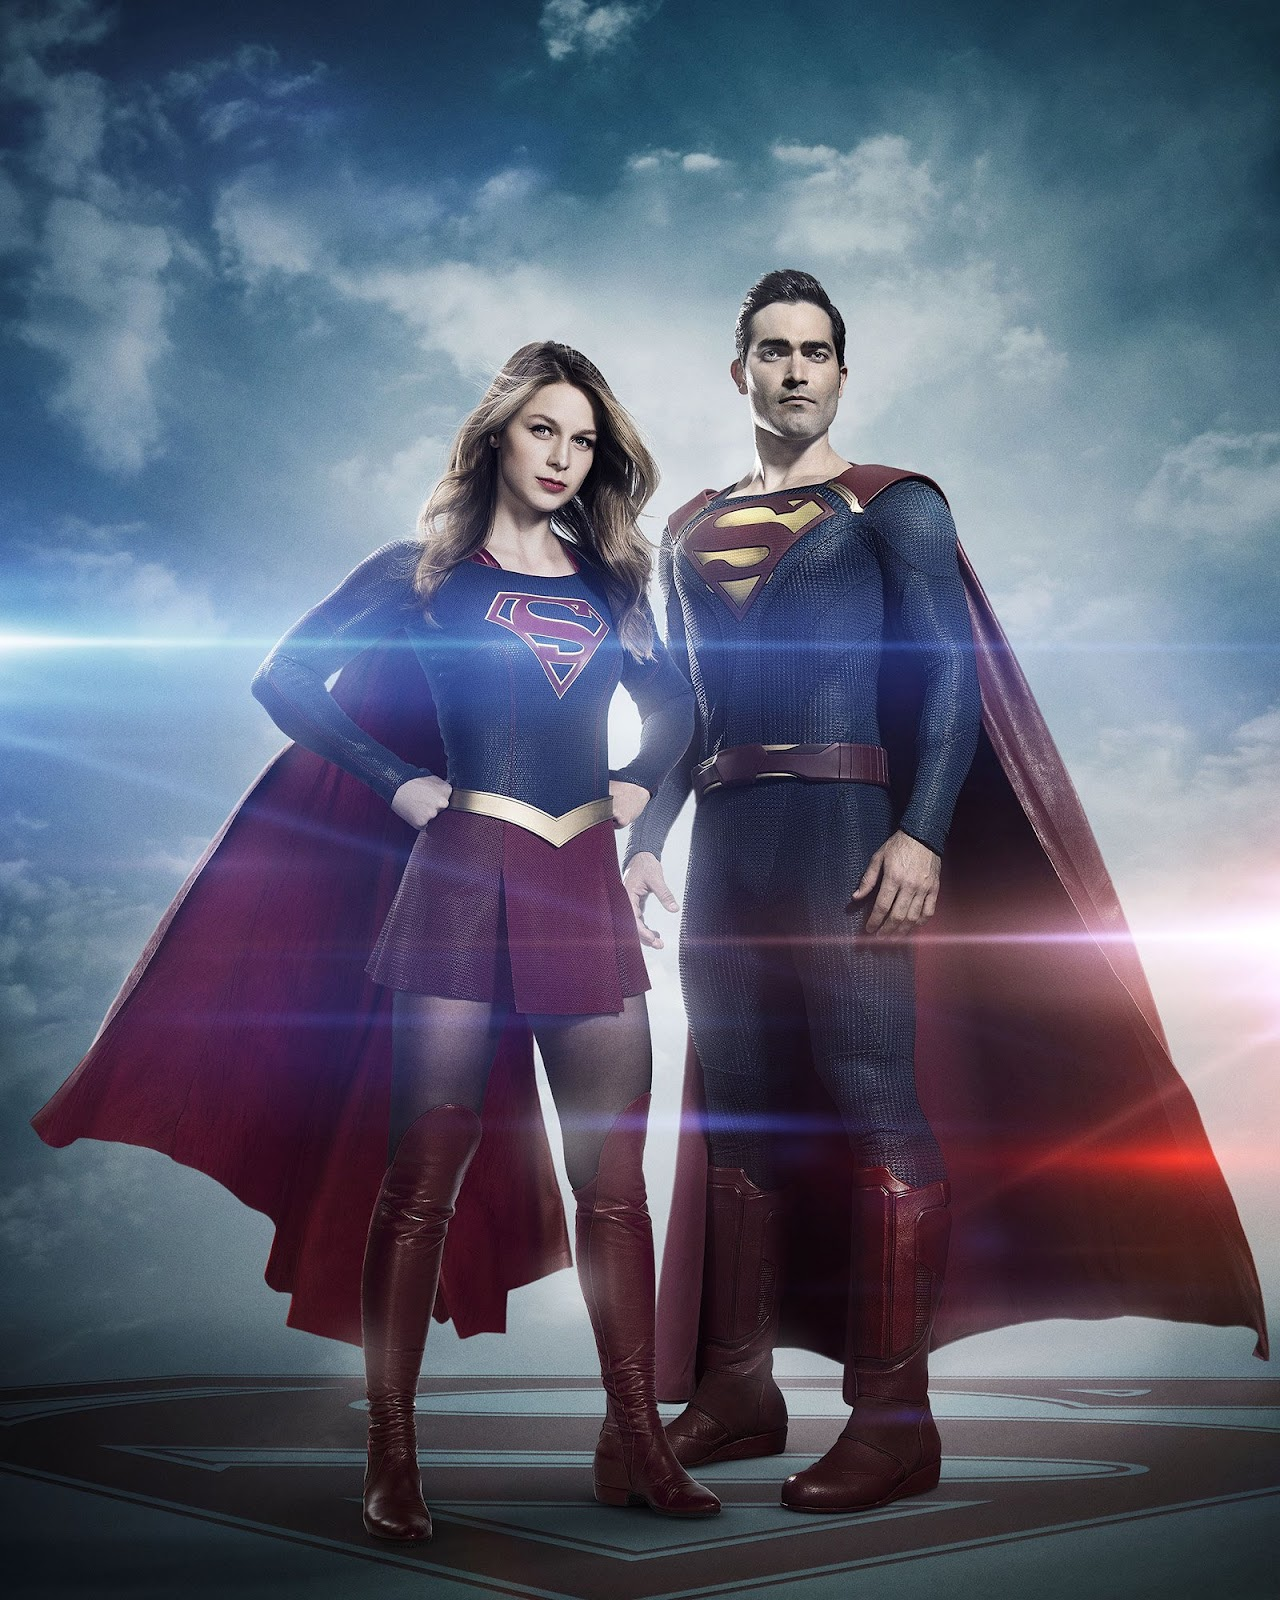 superman-supergirl.jpg